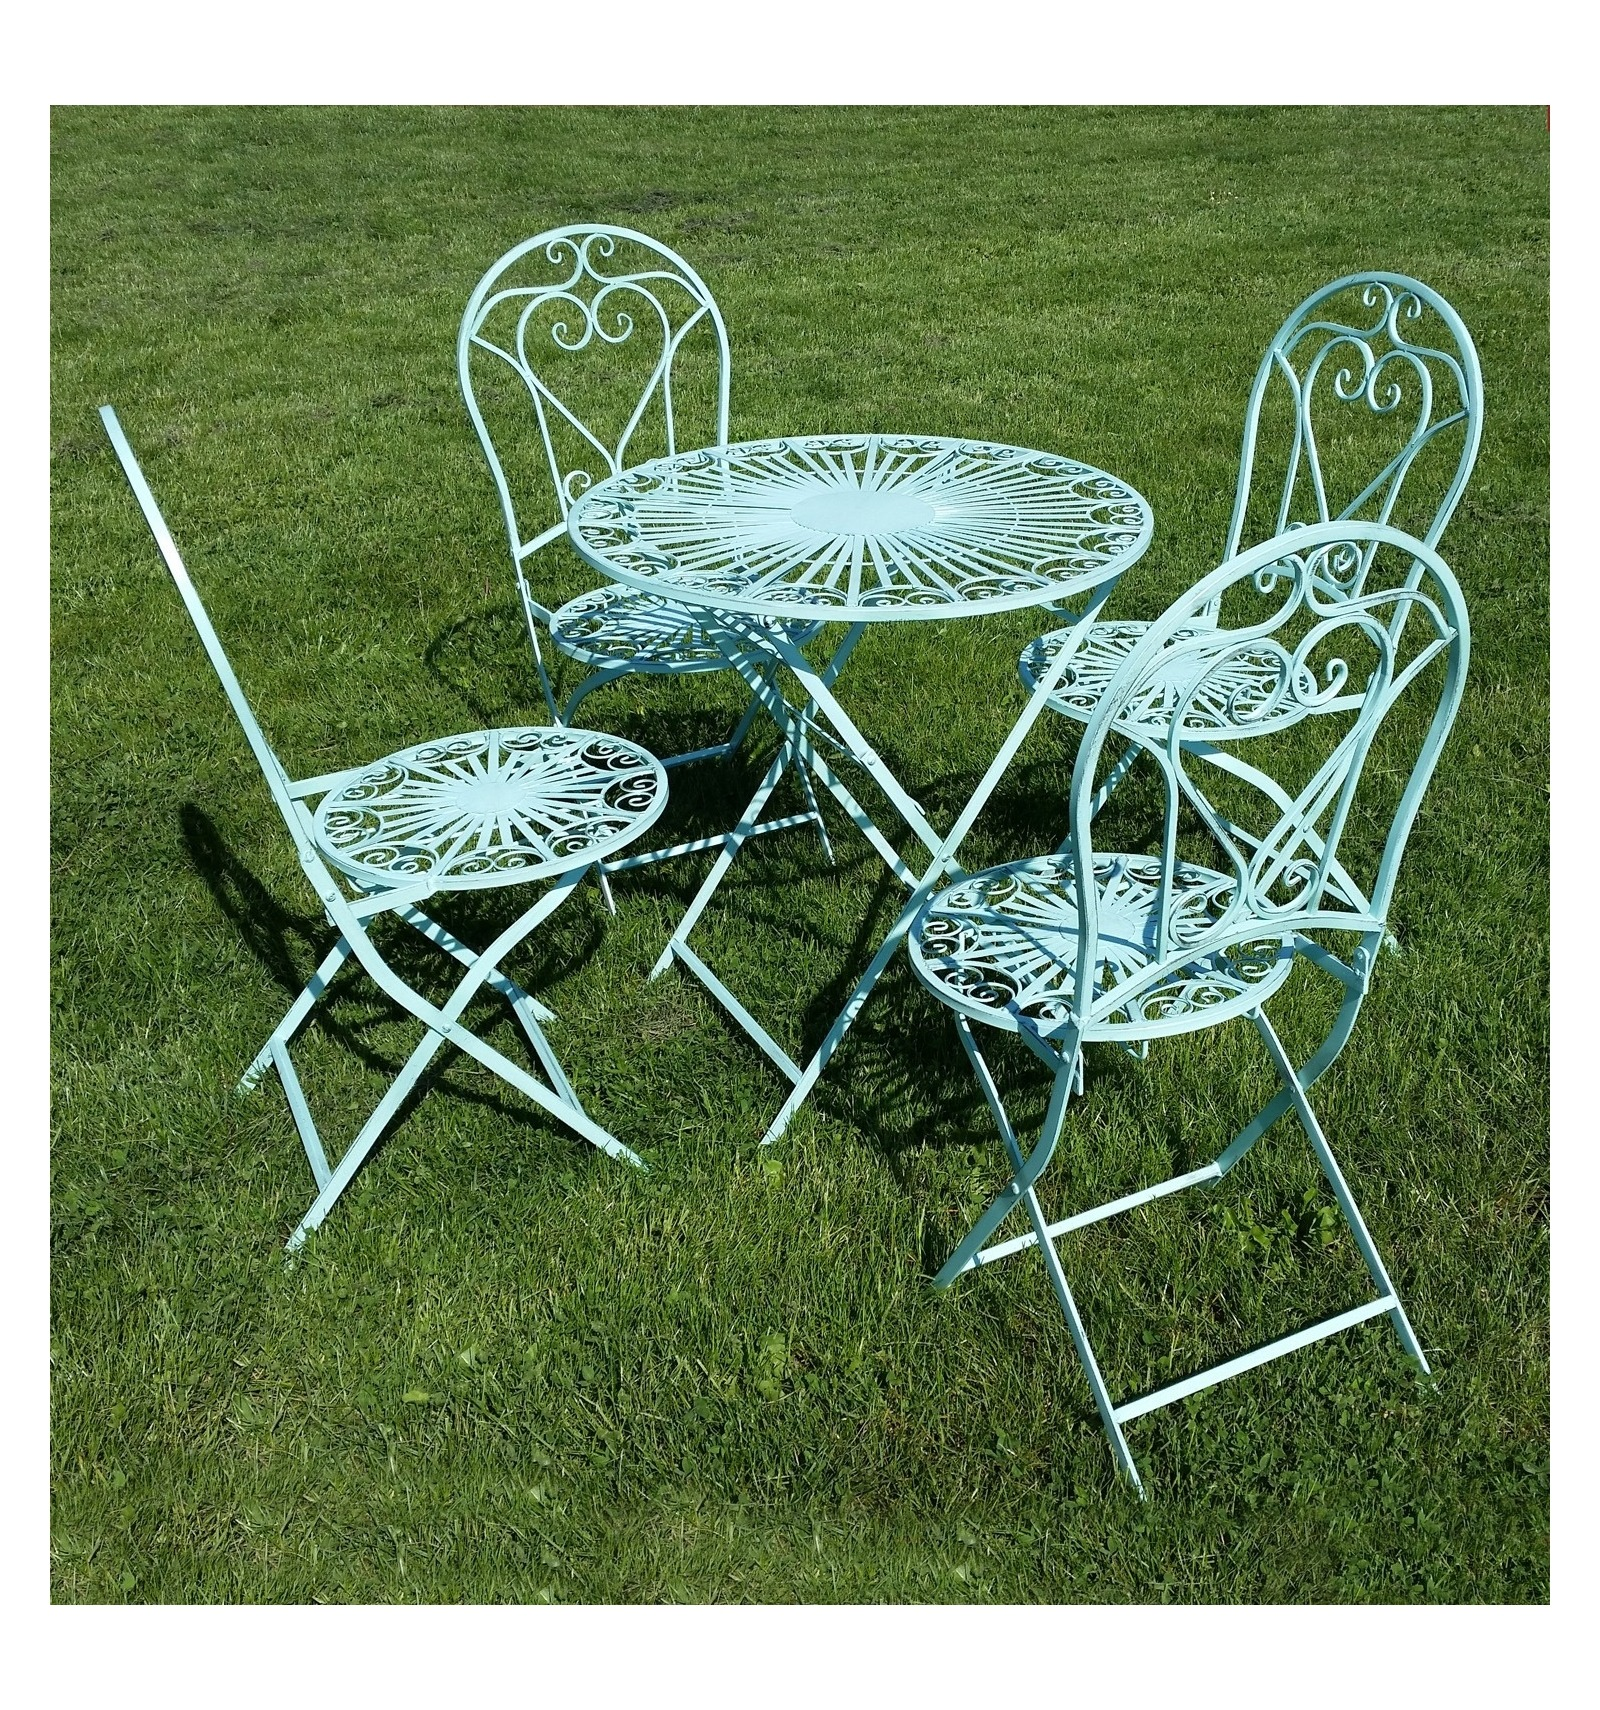 Garden Wrought Iron Chair And Table